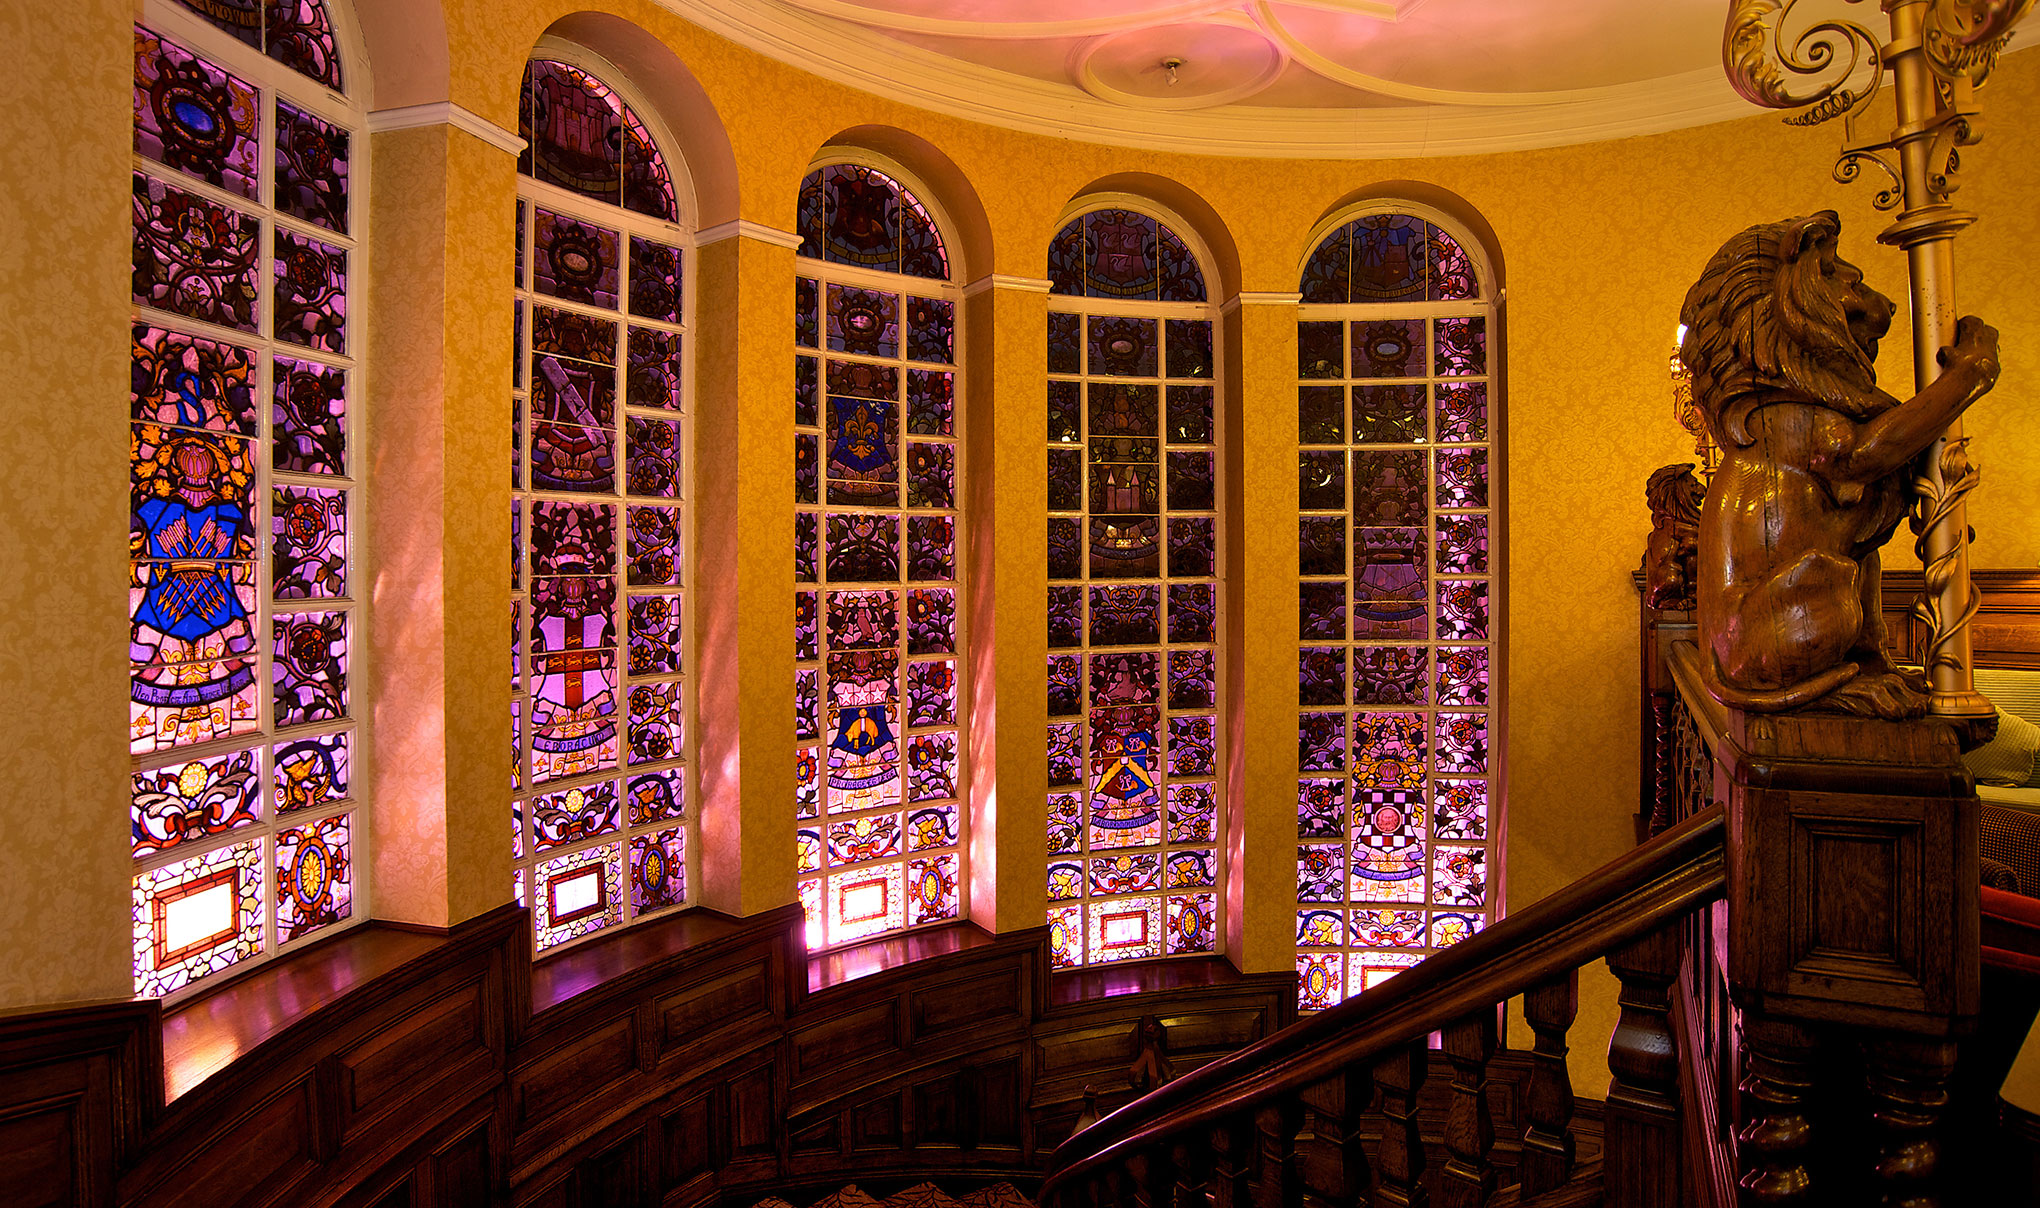 The grand staircase of Quebecs hotel in Leeds. 5 stained glass windows and carved staircase.